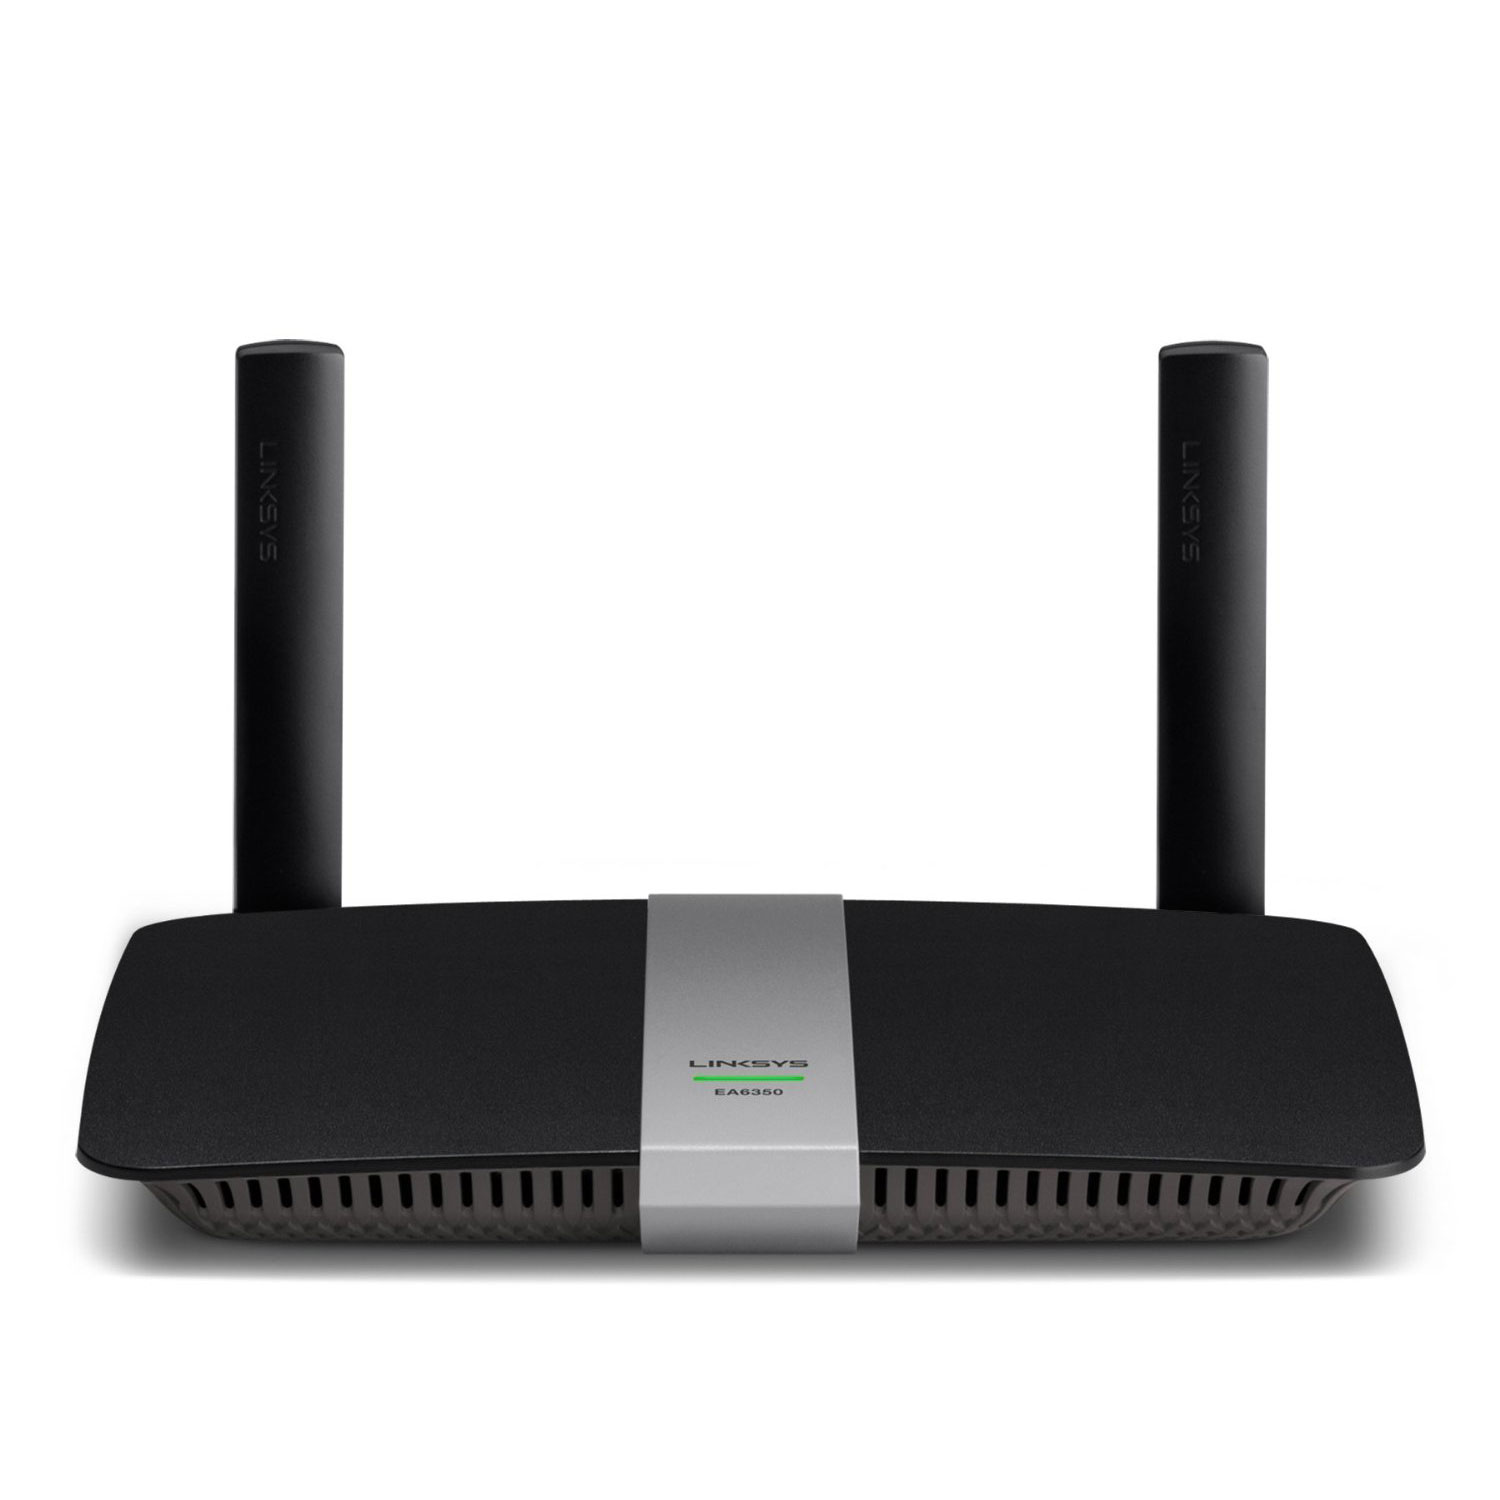 linksys ea6350 modem routeur linksys sur ldlc. Black Bedroom Furniture Sets. Home Design Ideas